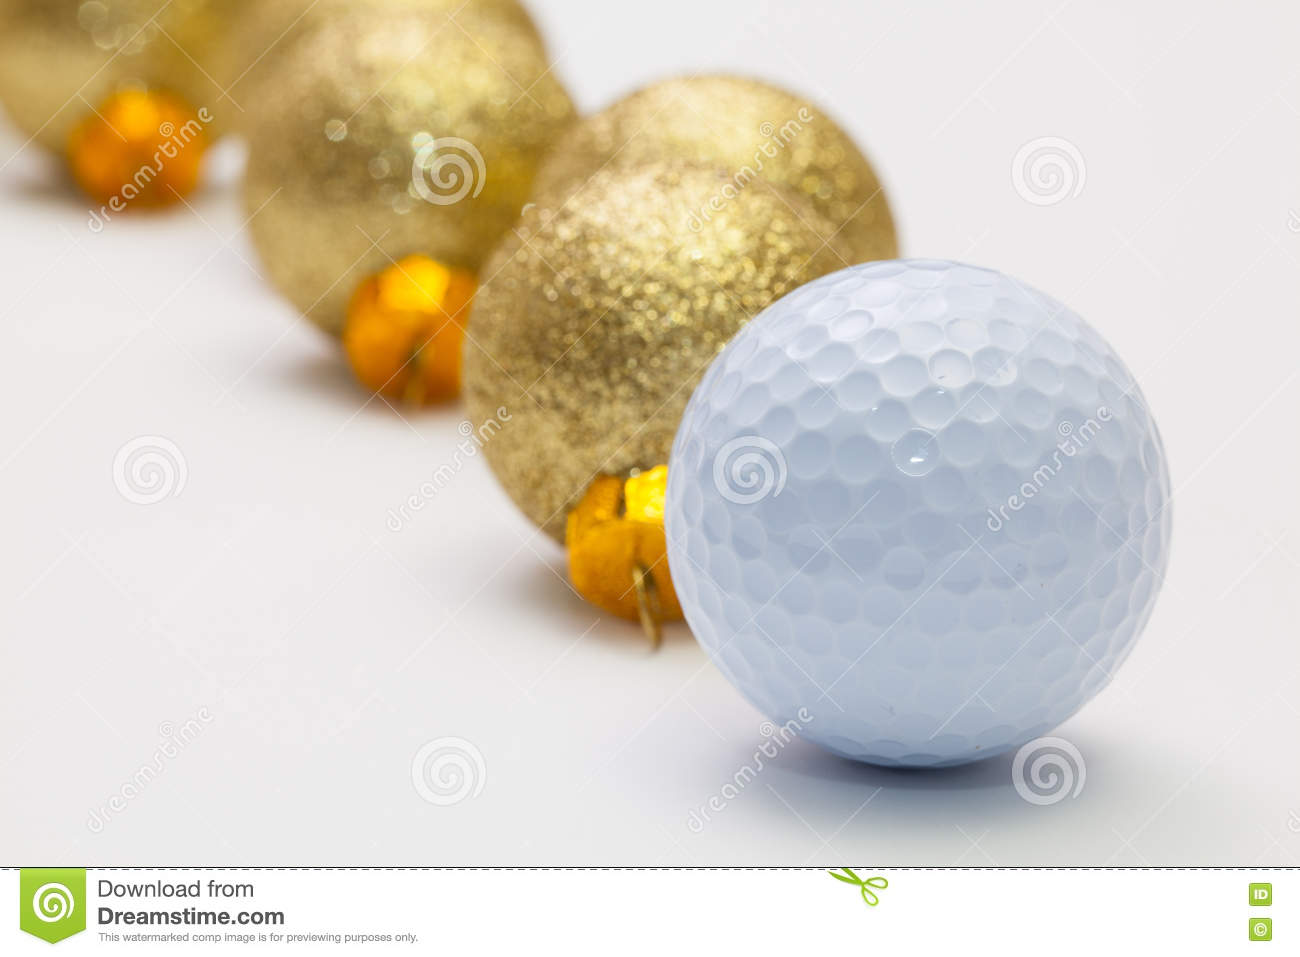 Boule de golf et décoration de noël sur le bureau blanc photo stock